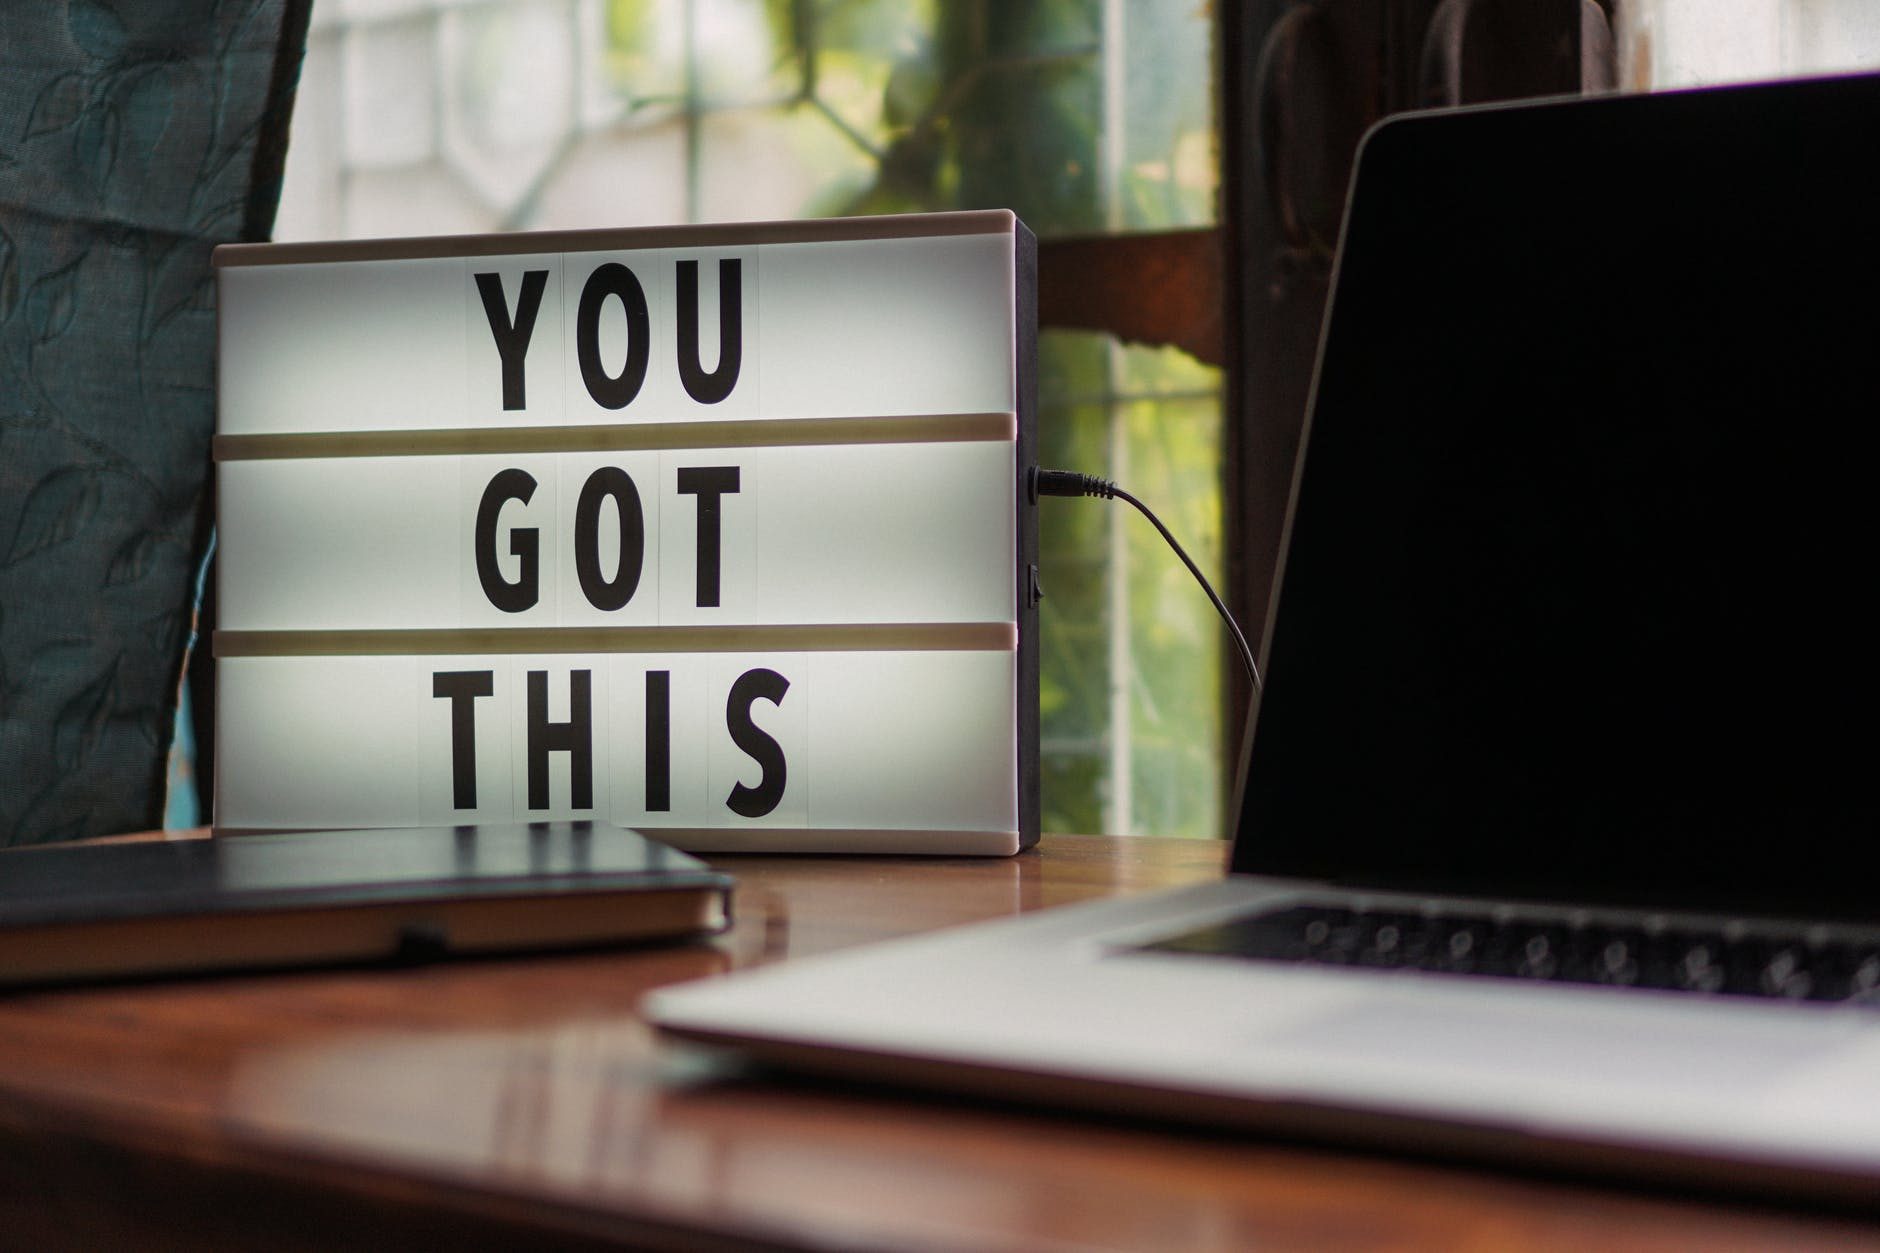 """A light up sign box that says """"you got this"""" on it, next to a blank screen laptop and a notepad."""